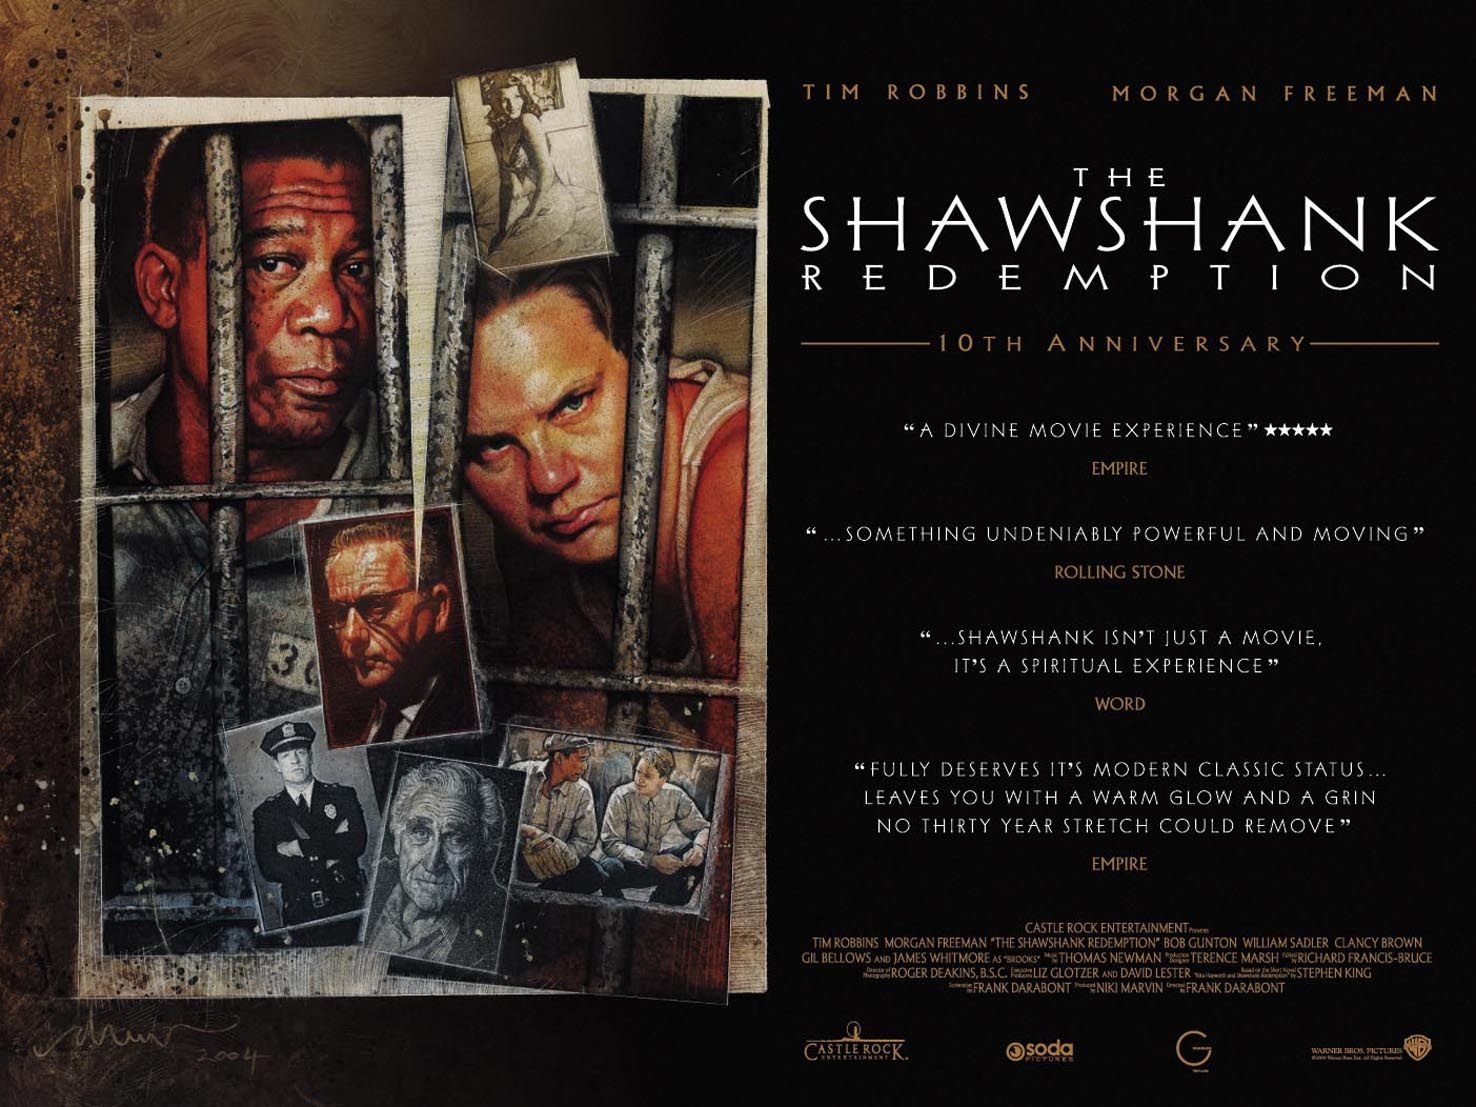 prisoners life in shawshank redemption film studies essay The shawshank redemption filmed in 1994, directed by frank darabont bases a story around the life of prisoners in the shawshank prison the captivating film revolves around the strong friendship that is built between two prisoners, andy dufresne (tim robbins) a smart banker, and red (morgan freeman) a long-term inmate, who becomes andy's closest accomplice.